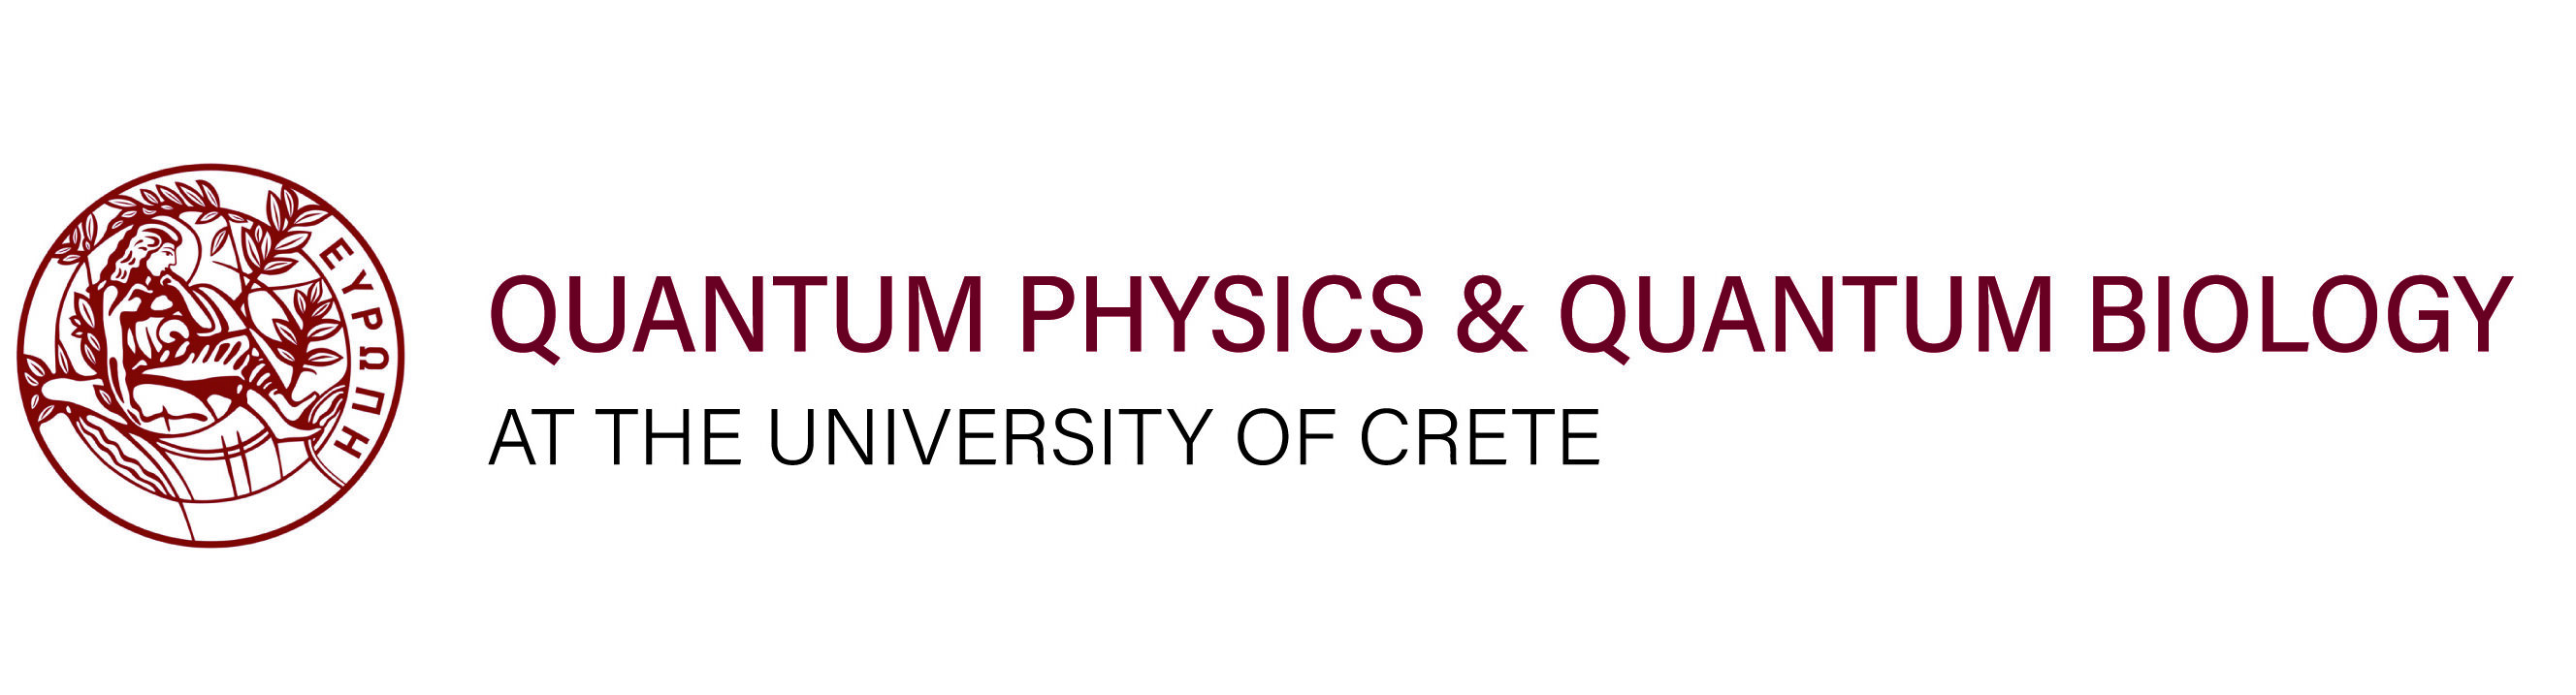 Quantum Physics & Quantum Biology Laboratory at University of Crete